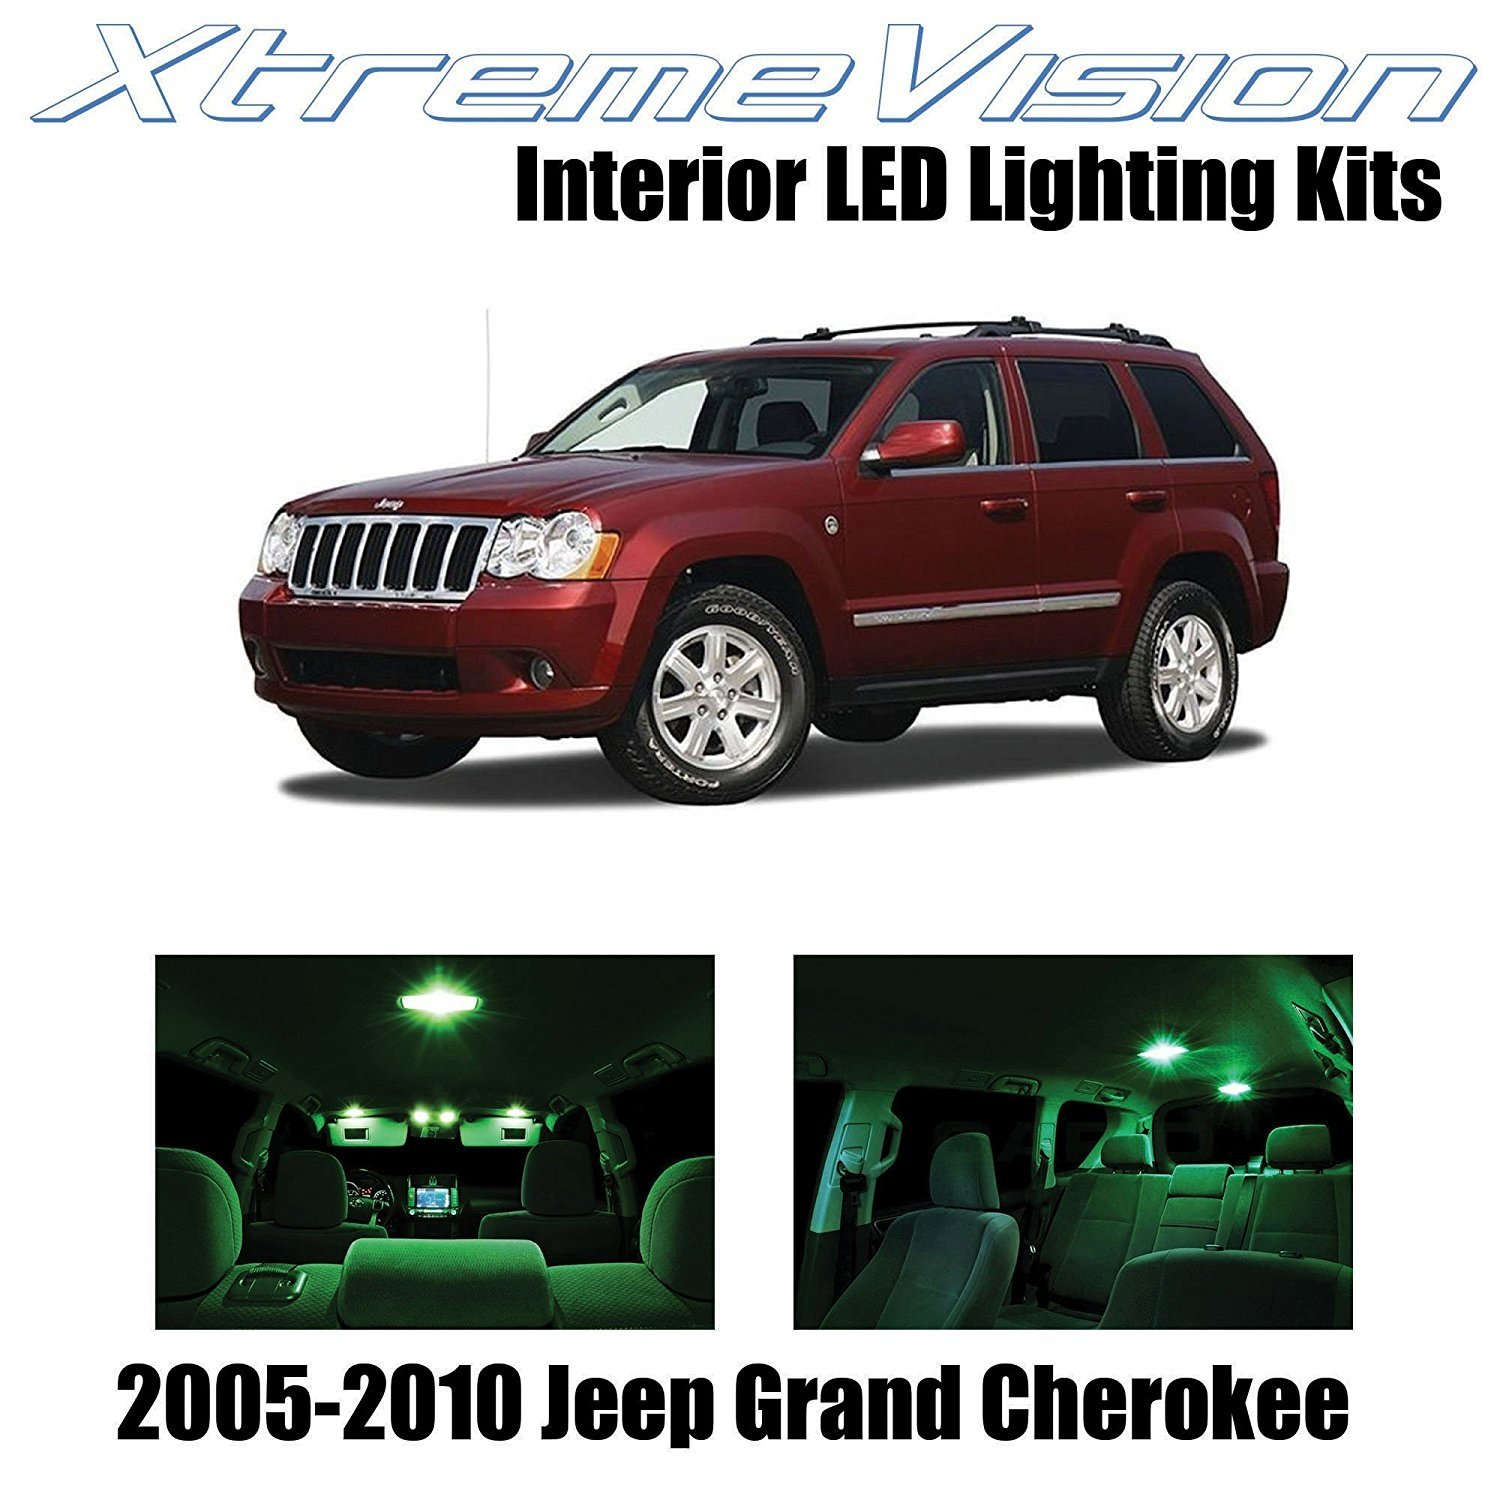 XtremeVision LED for Jeep Grand Cherokee 2005-2010 (9 Pieces) Green Premium Interior LED Kit Package + Installation Tool